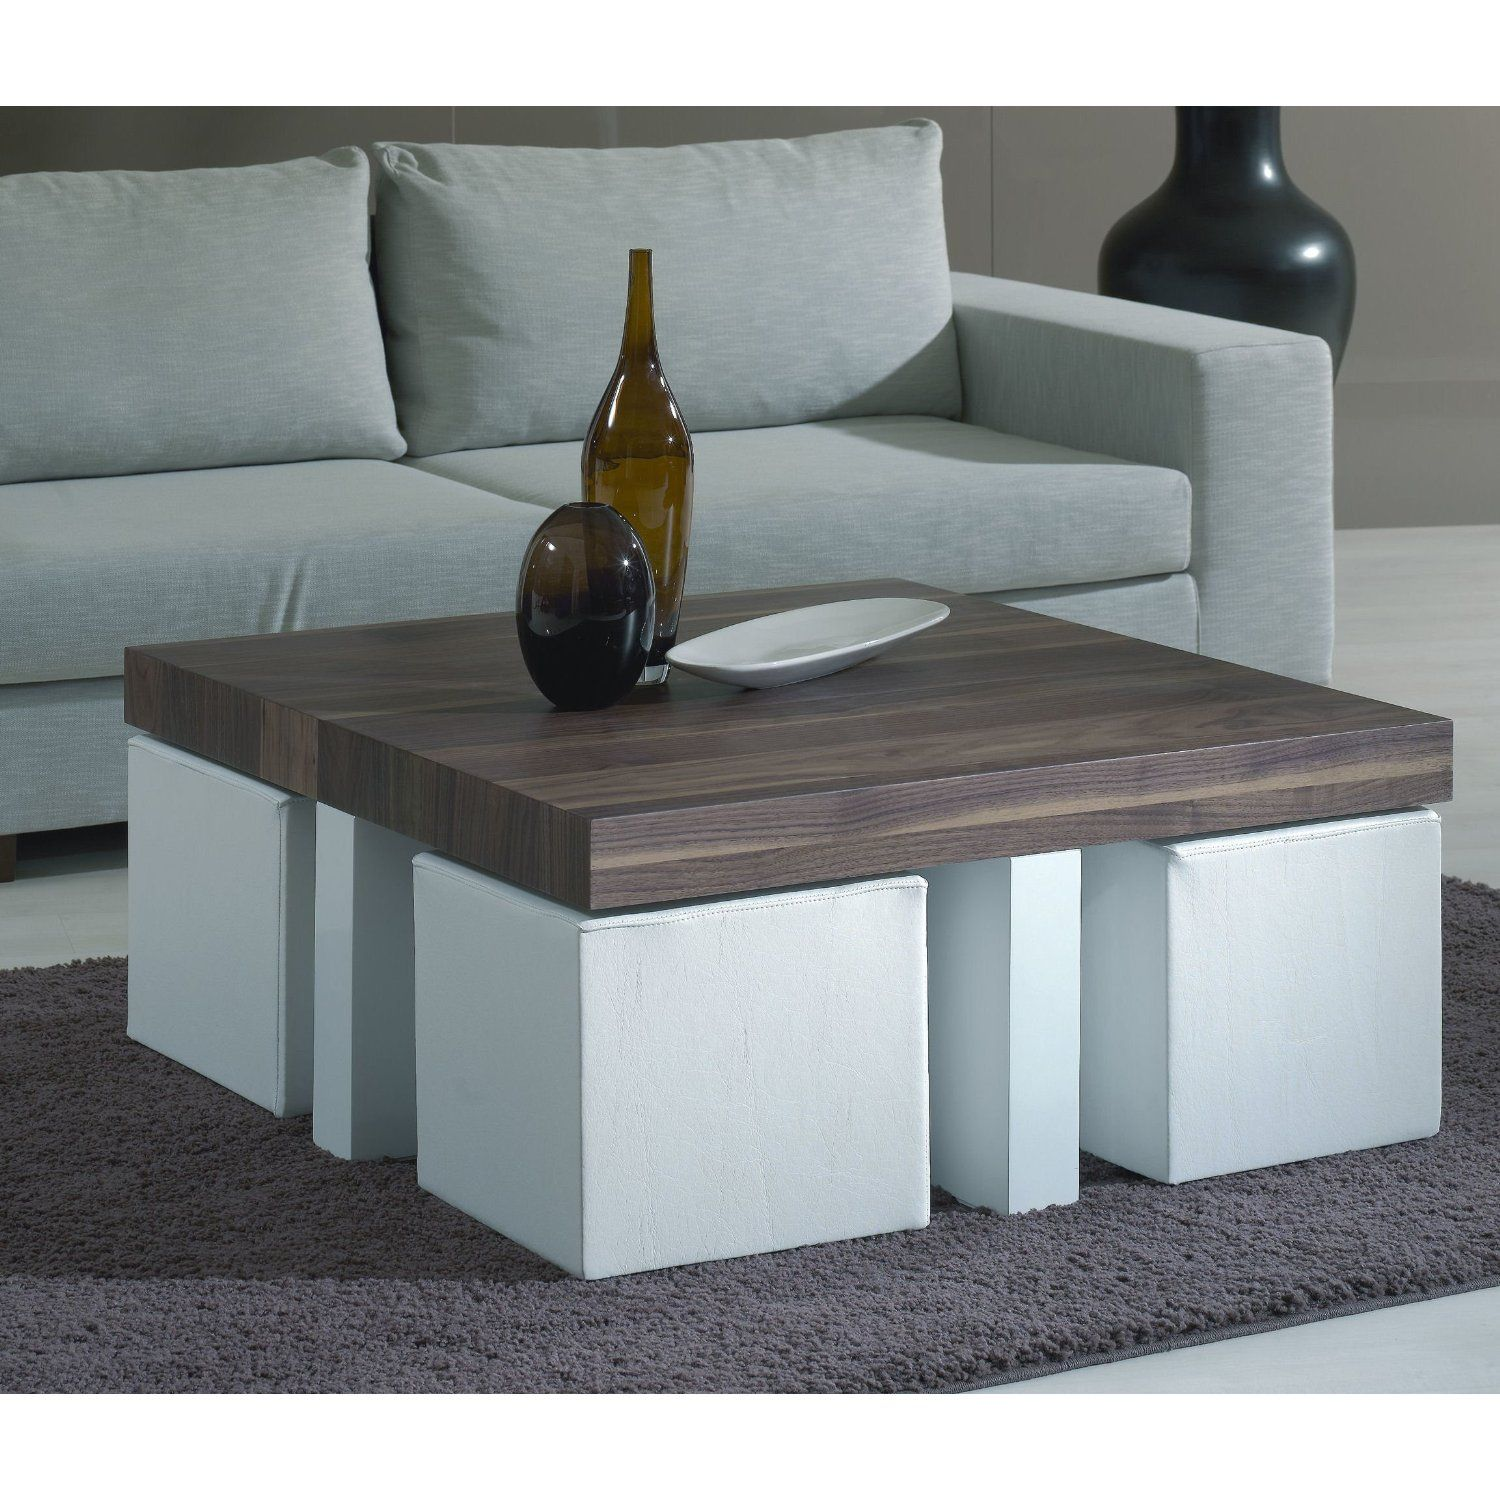 Coffee Table With Stools.Coffee Table With Stools Love This Idea For Stools Tucked Under A